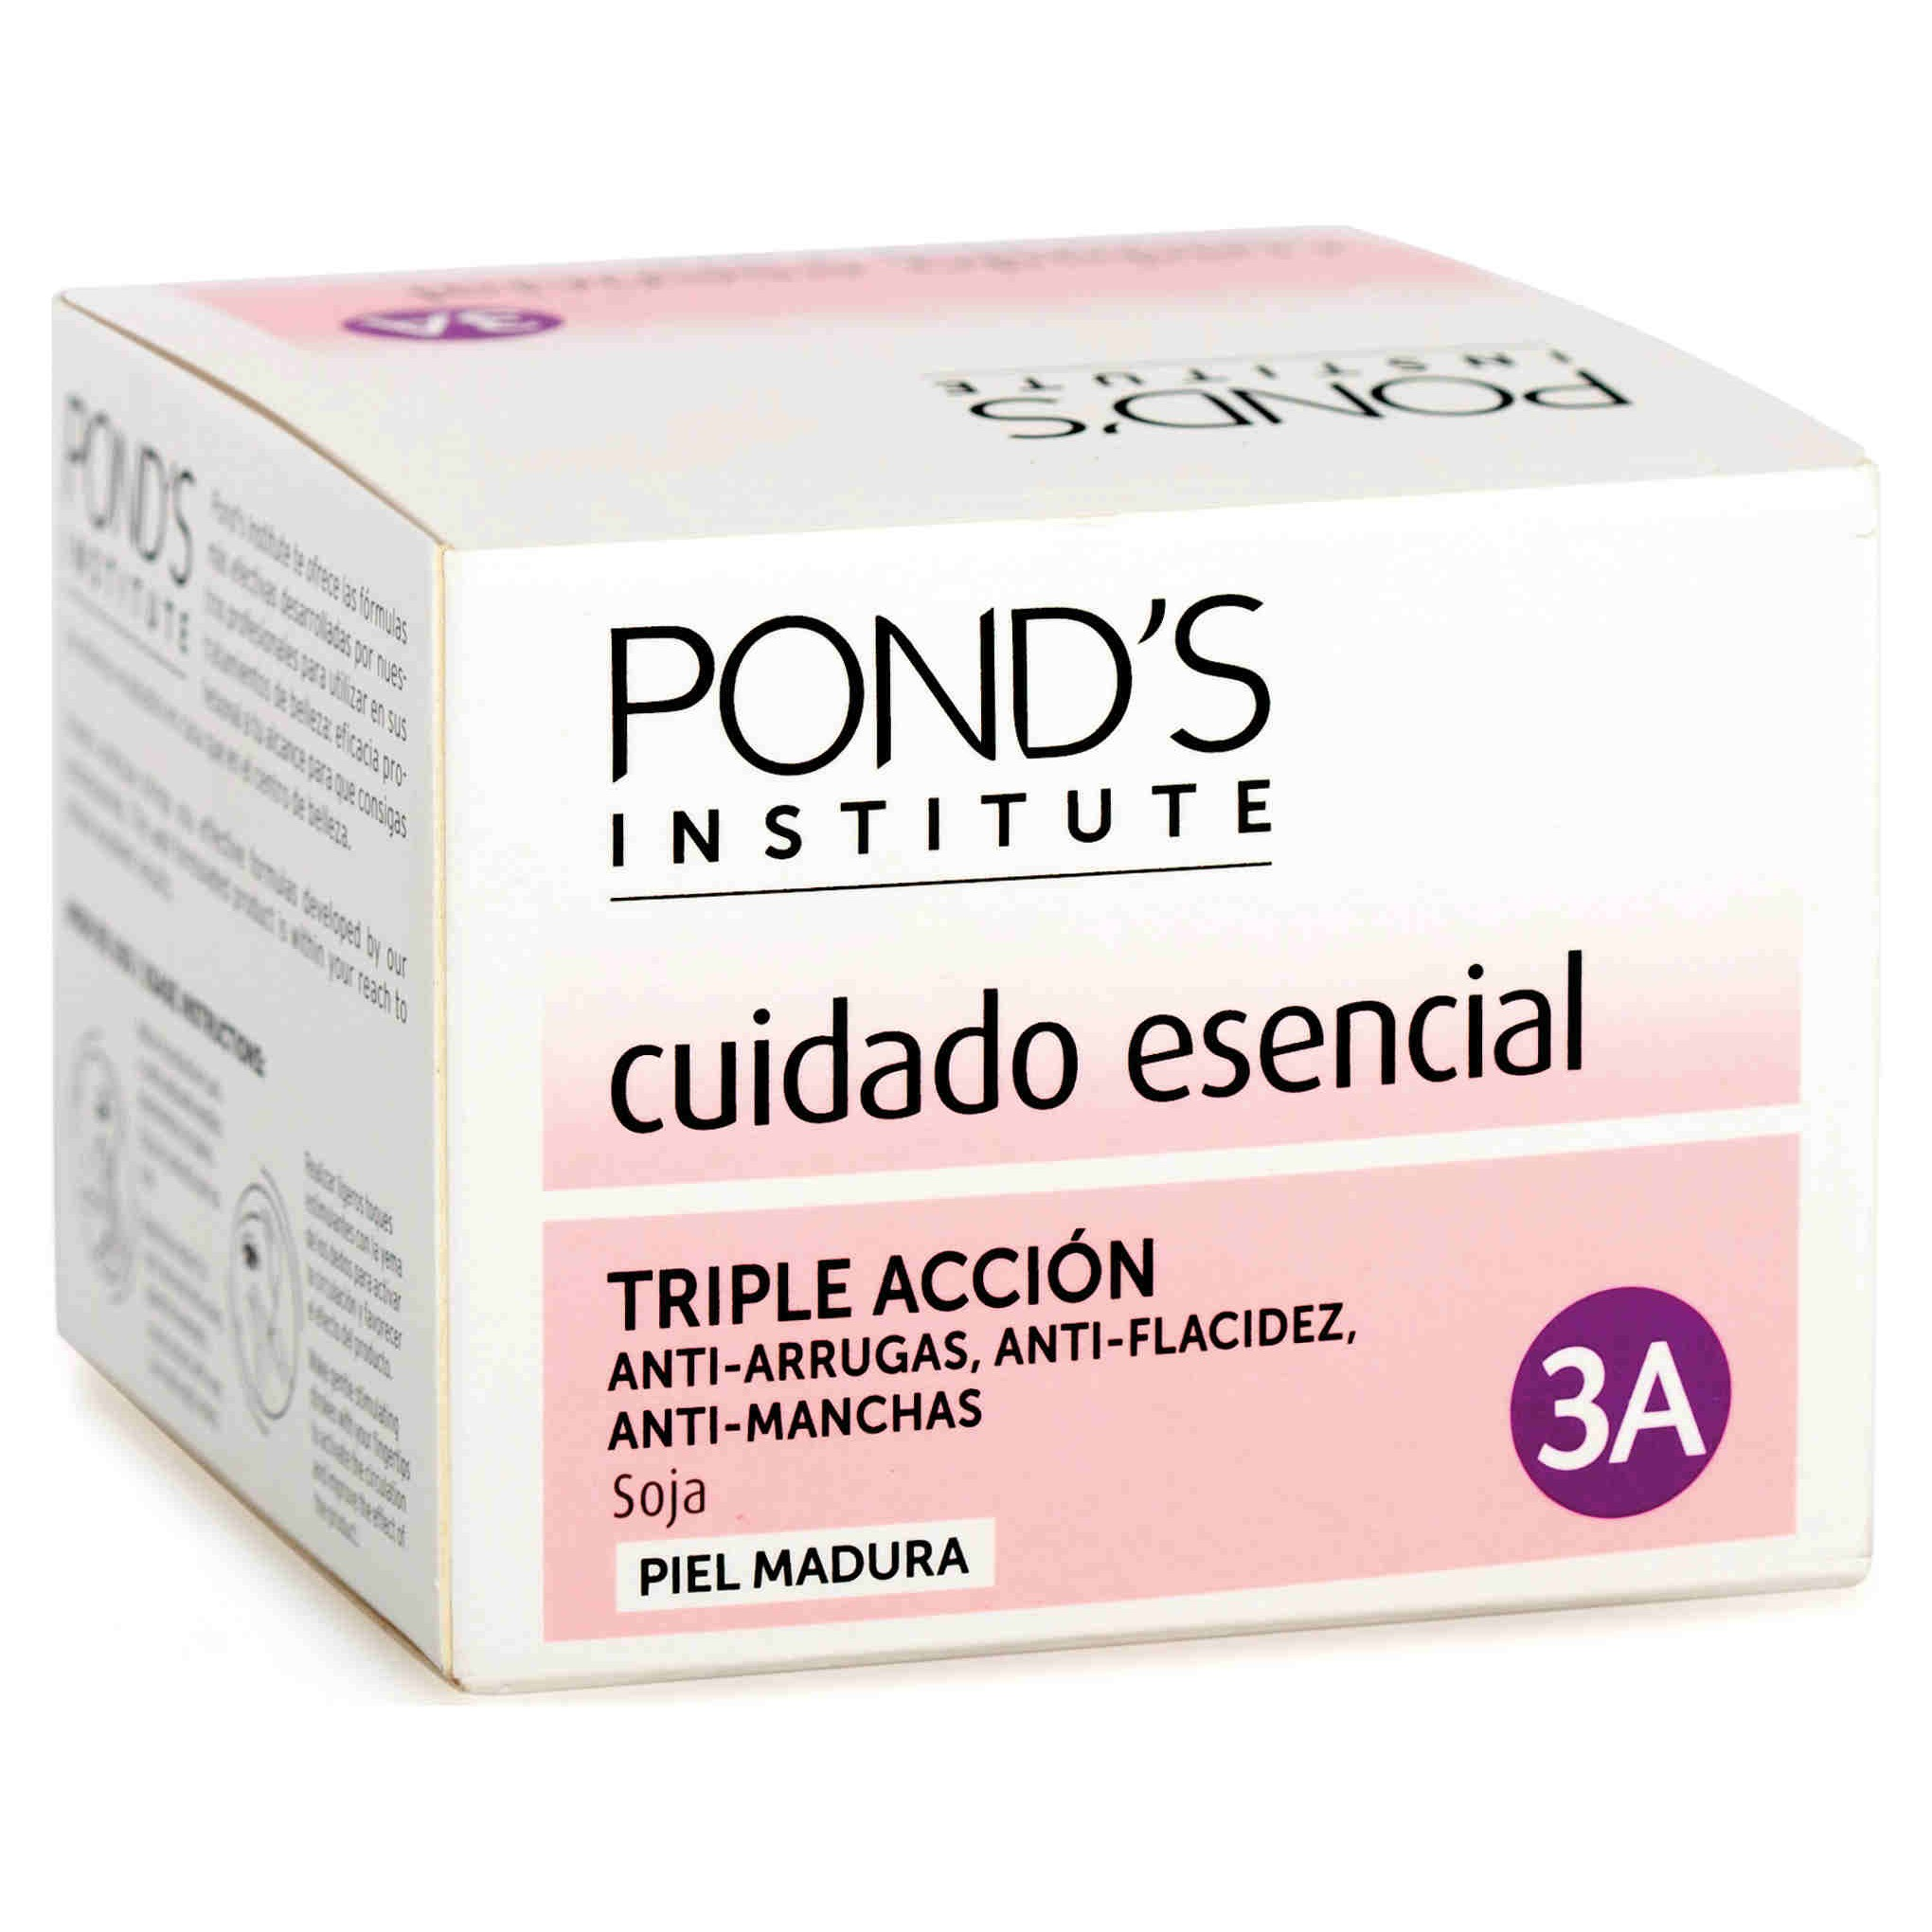 Pond's Institute crema nutritiva triple accion antiarrugas antiflacidez antimanchas piel madura precio especial de 50ml. en bote